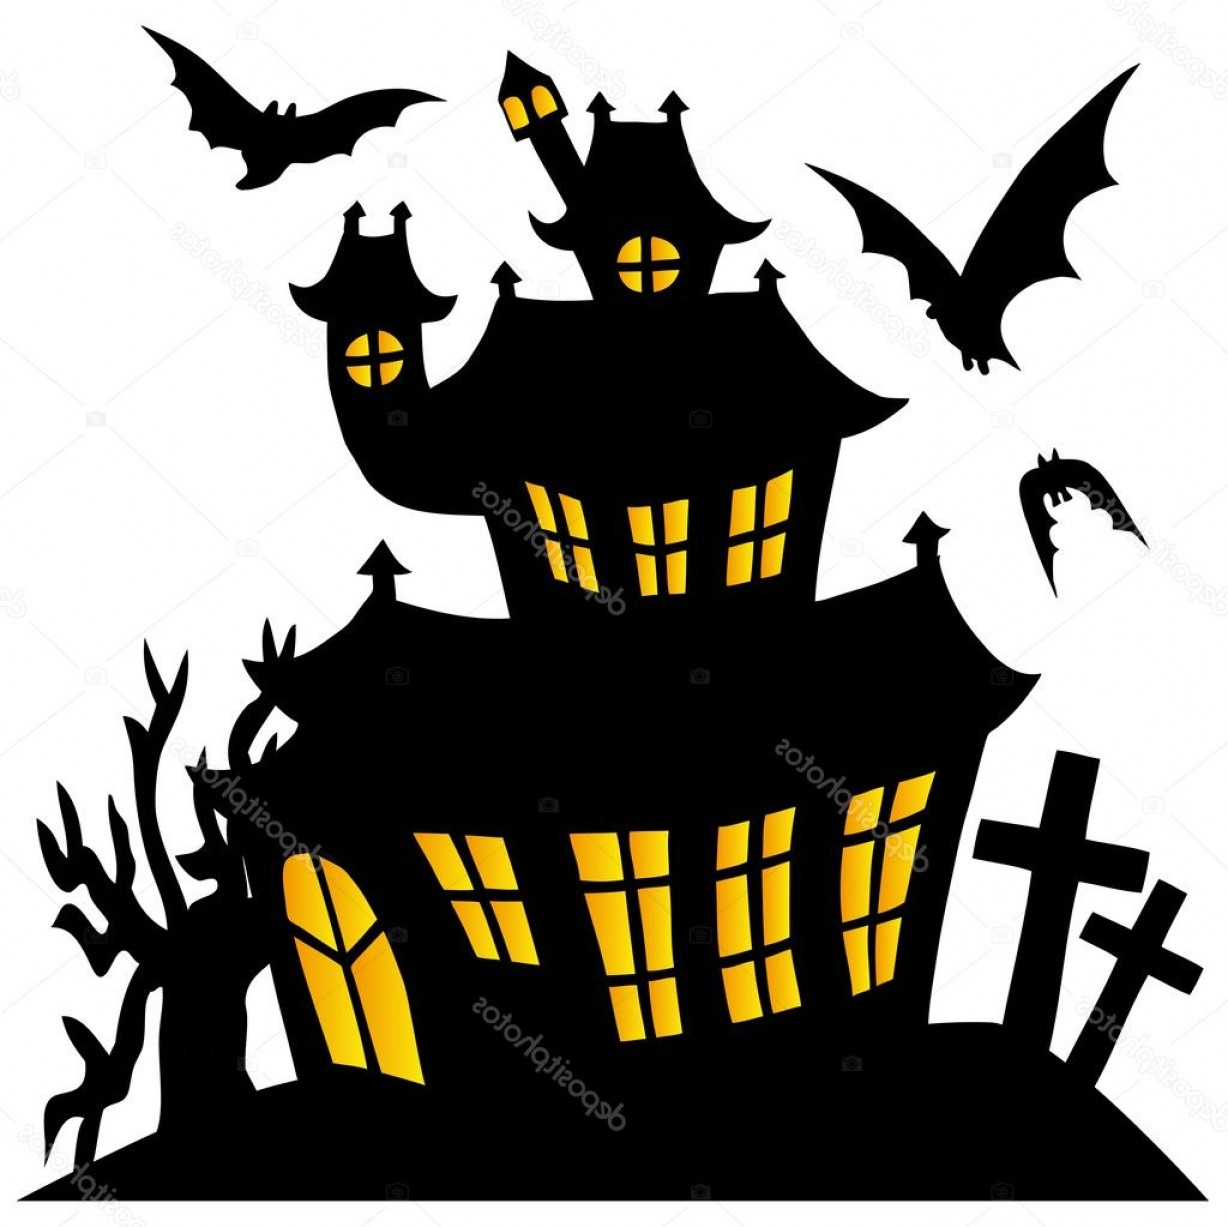 1228x1227 Halloween Haunted House Silhouette Vector Createmepink